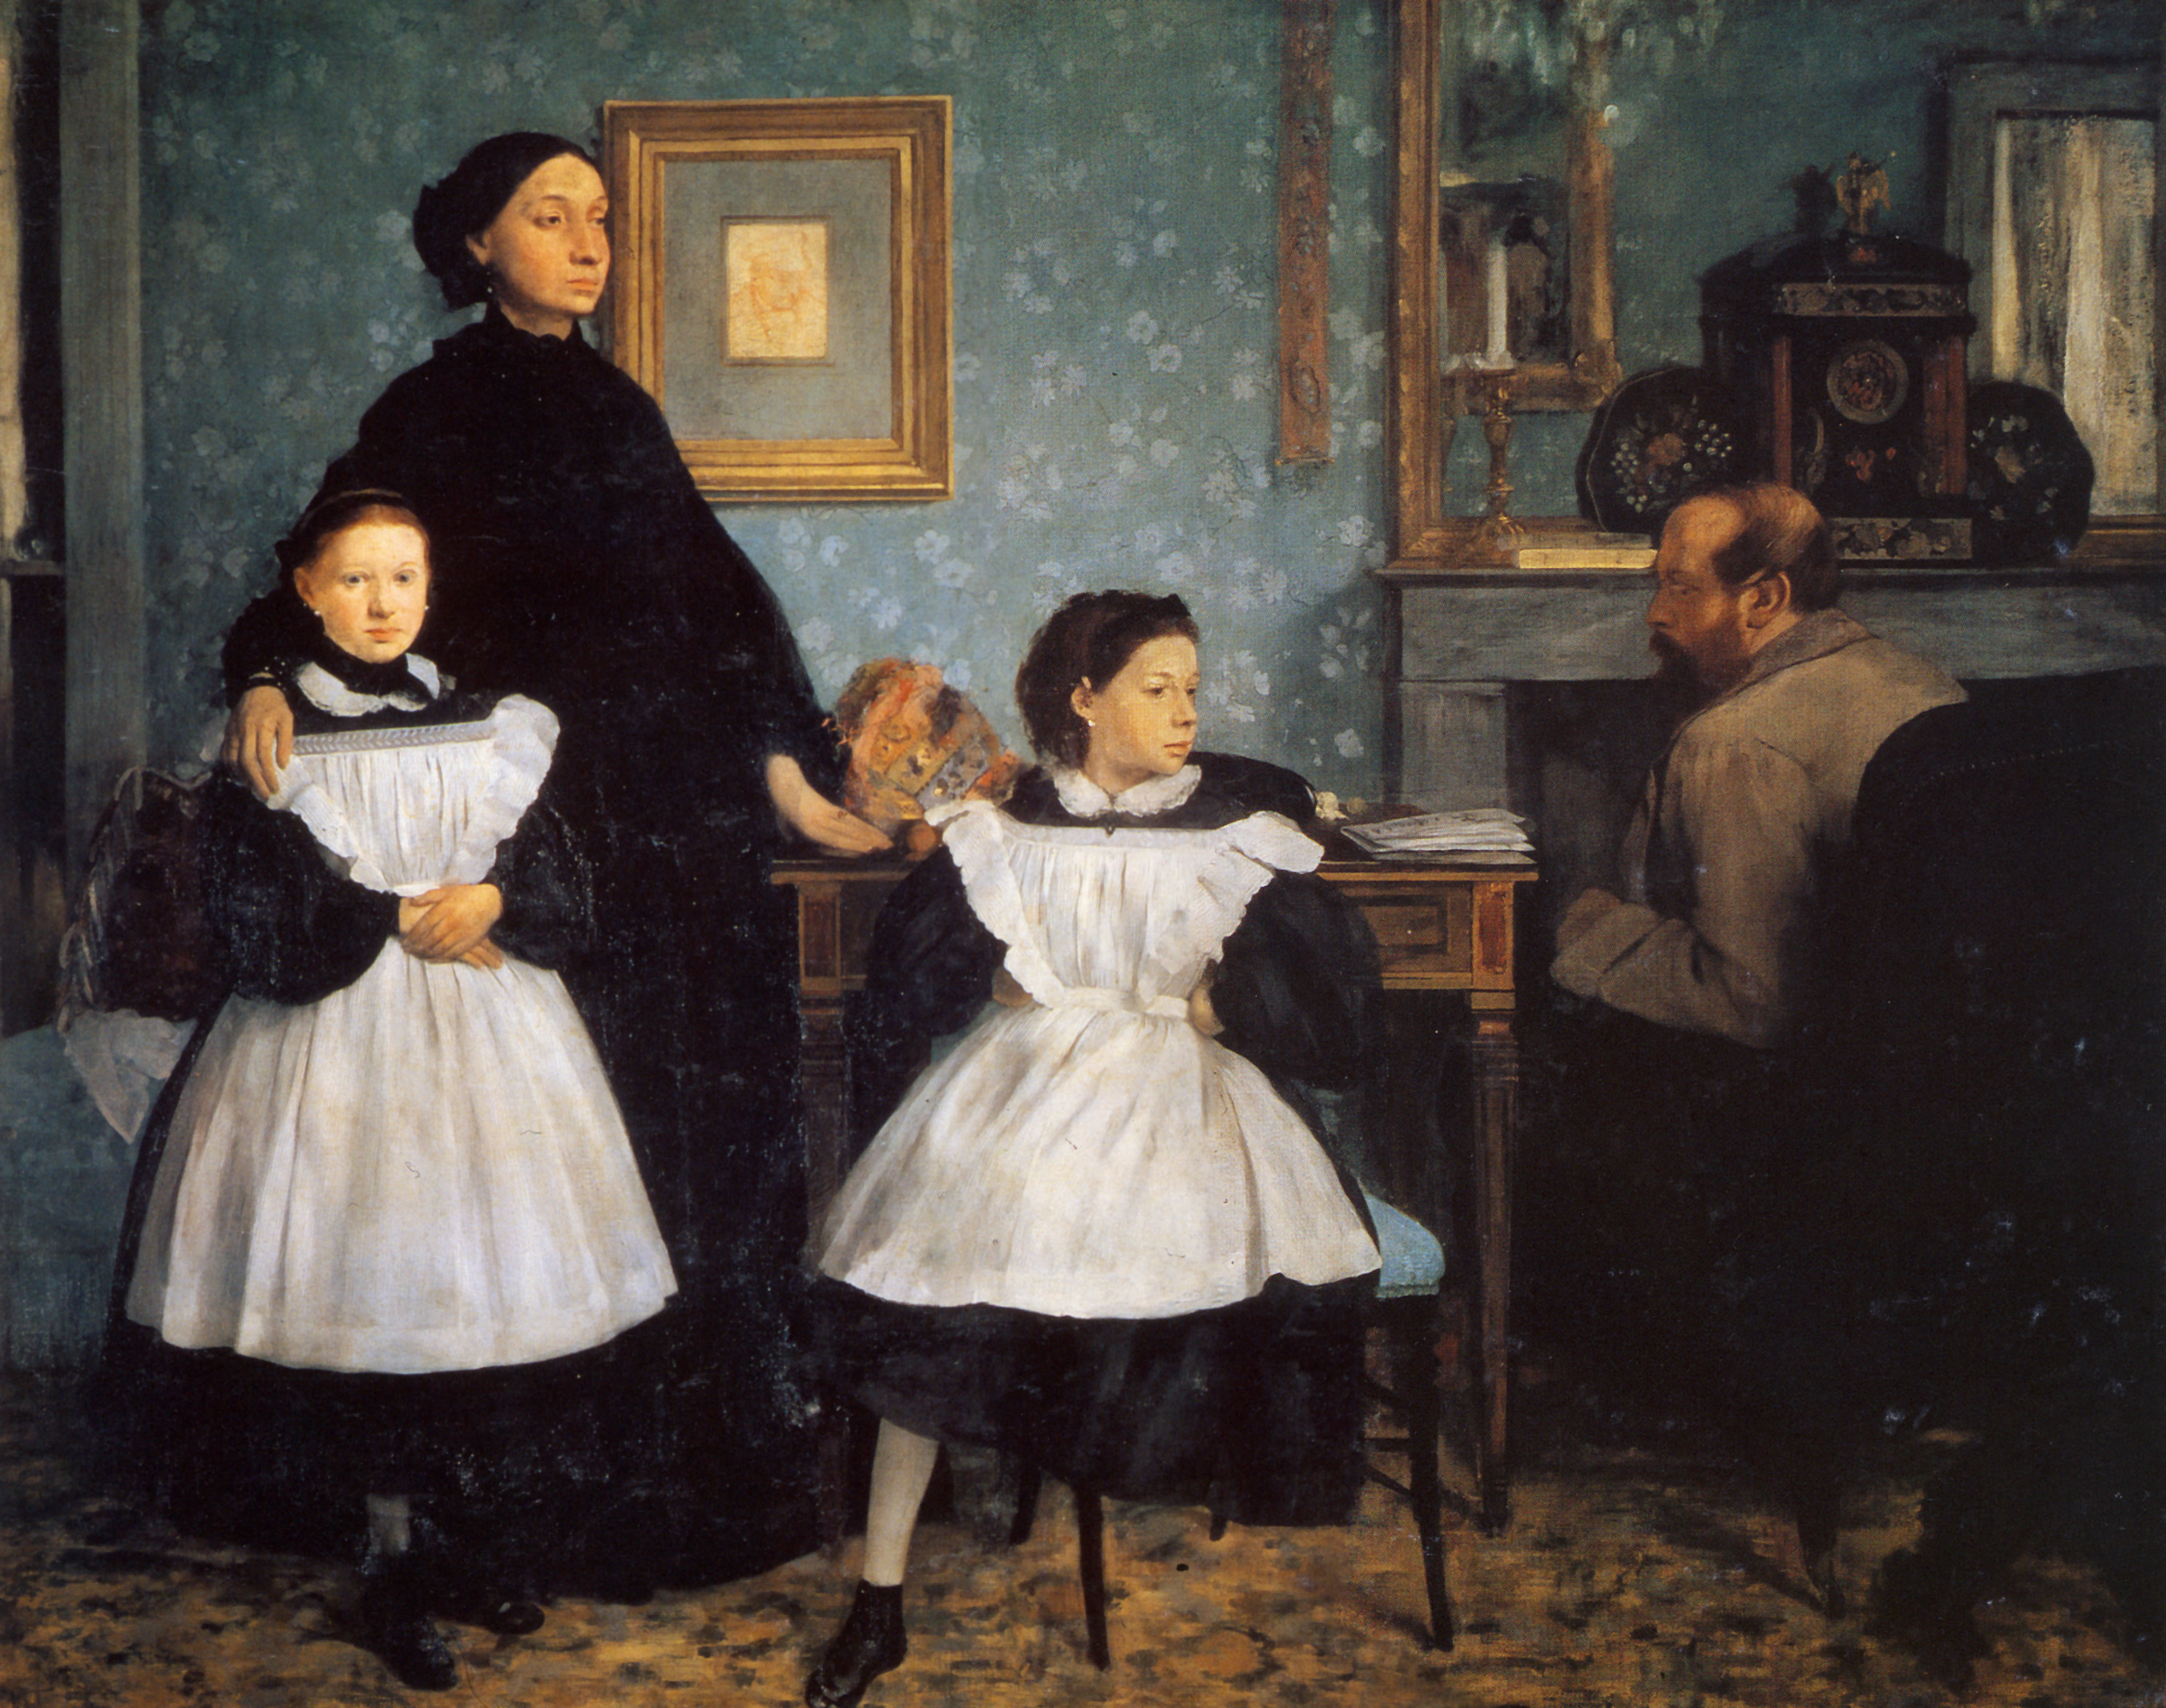 a visual analysis of a painting of the belleli family by edgar degas Edgar degas, the bellelli family, 1858-67, oil on canvas, 78-3/4 x 98-1/2   preparatory sketches for the painting may have been made in florence where  the family  especially in a portrait and although this is not a traditional formal  portrait,.